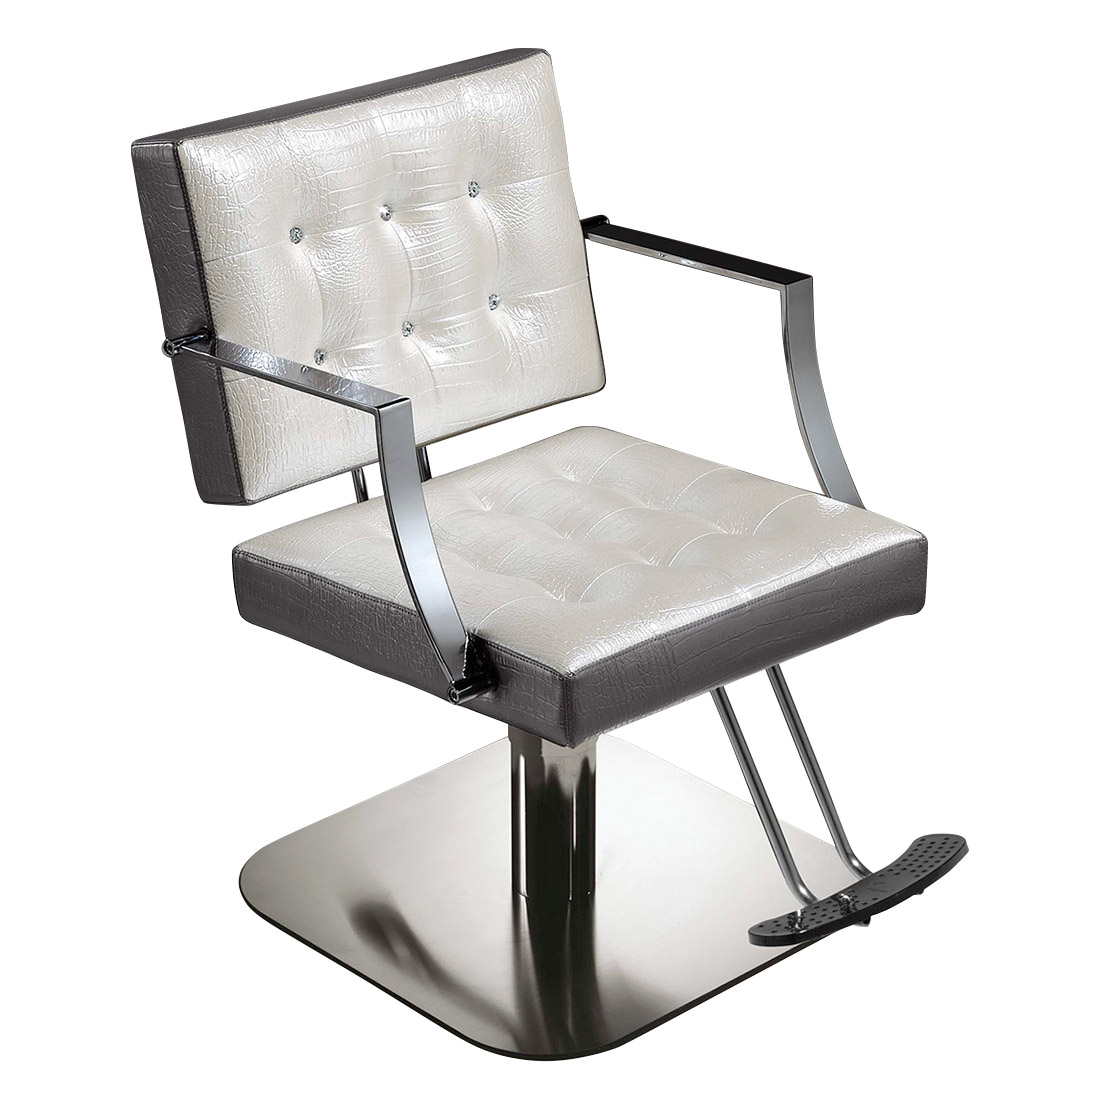 Grace Beauty Salon Chair by Salon Ambience  main product image